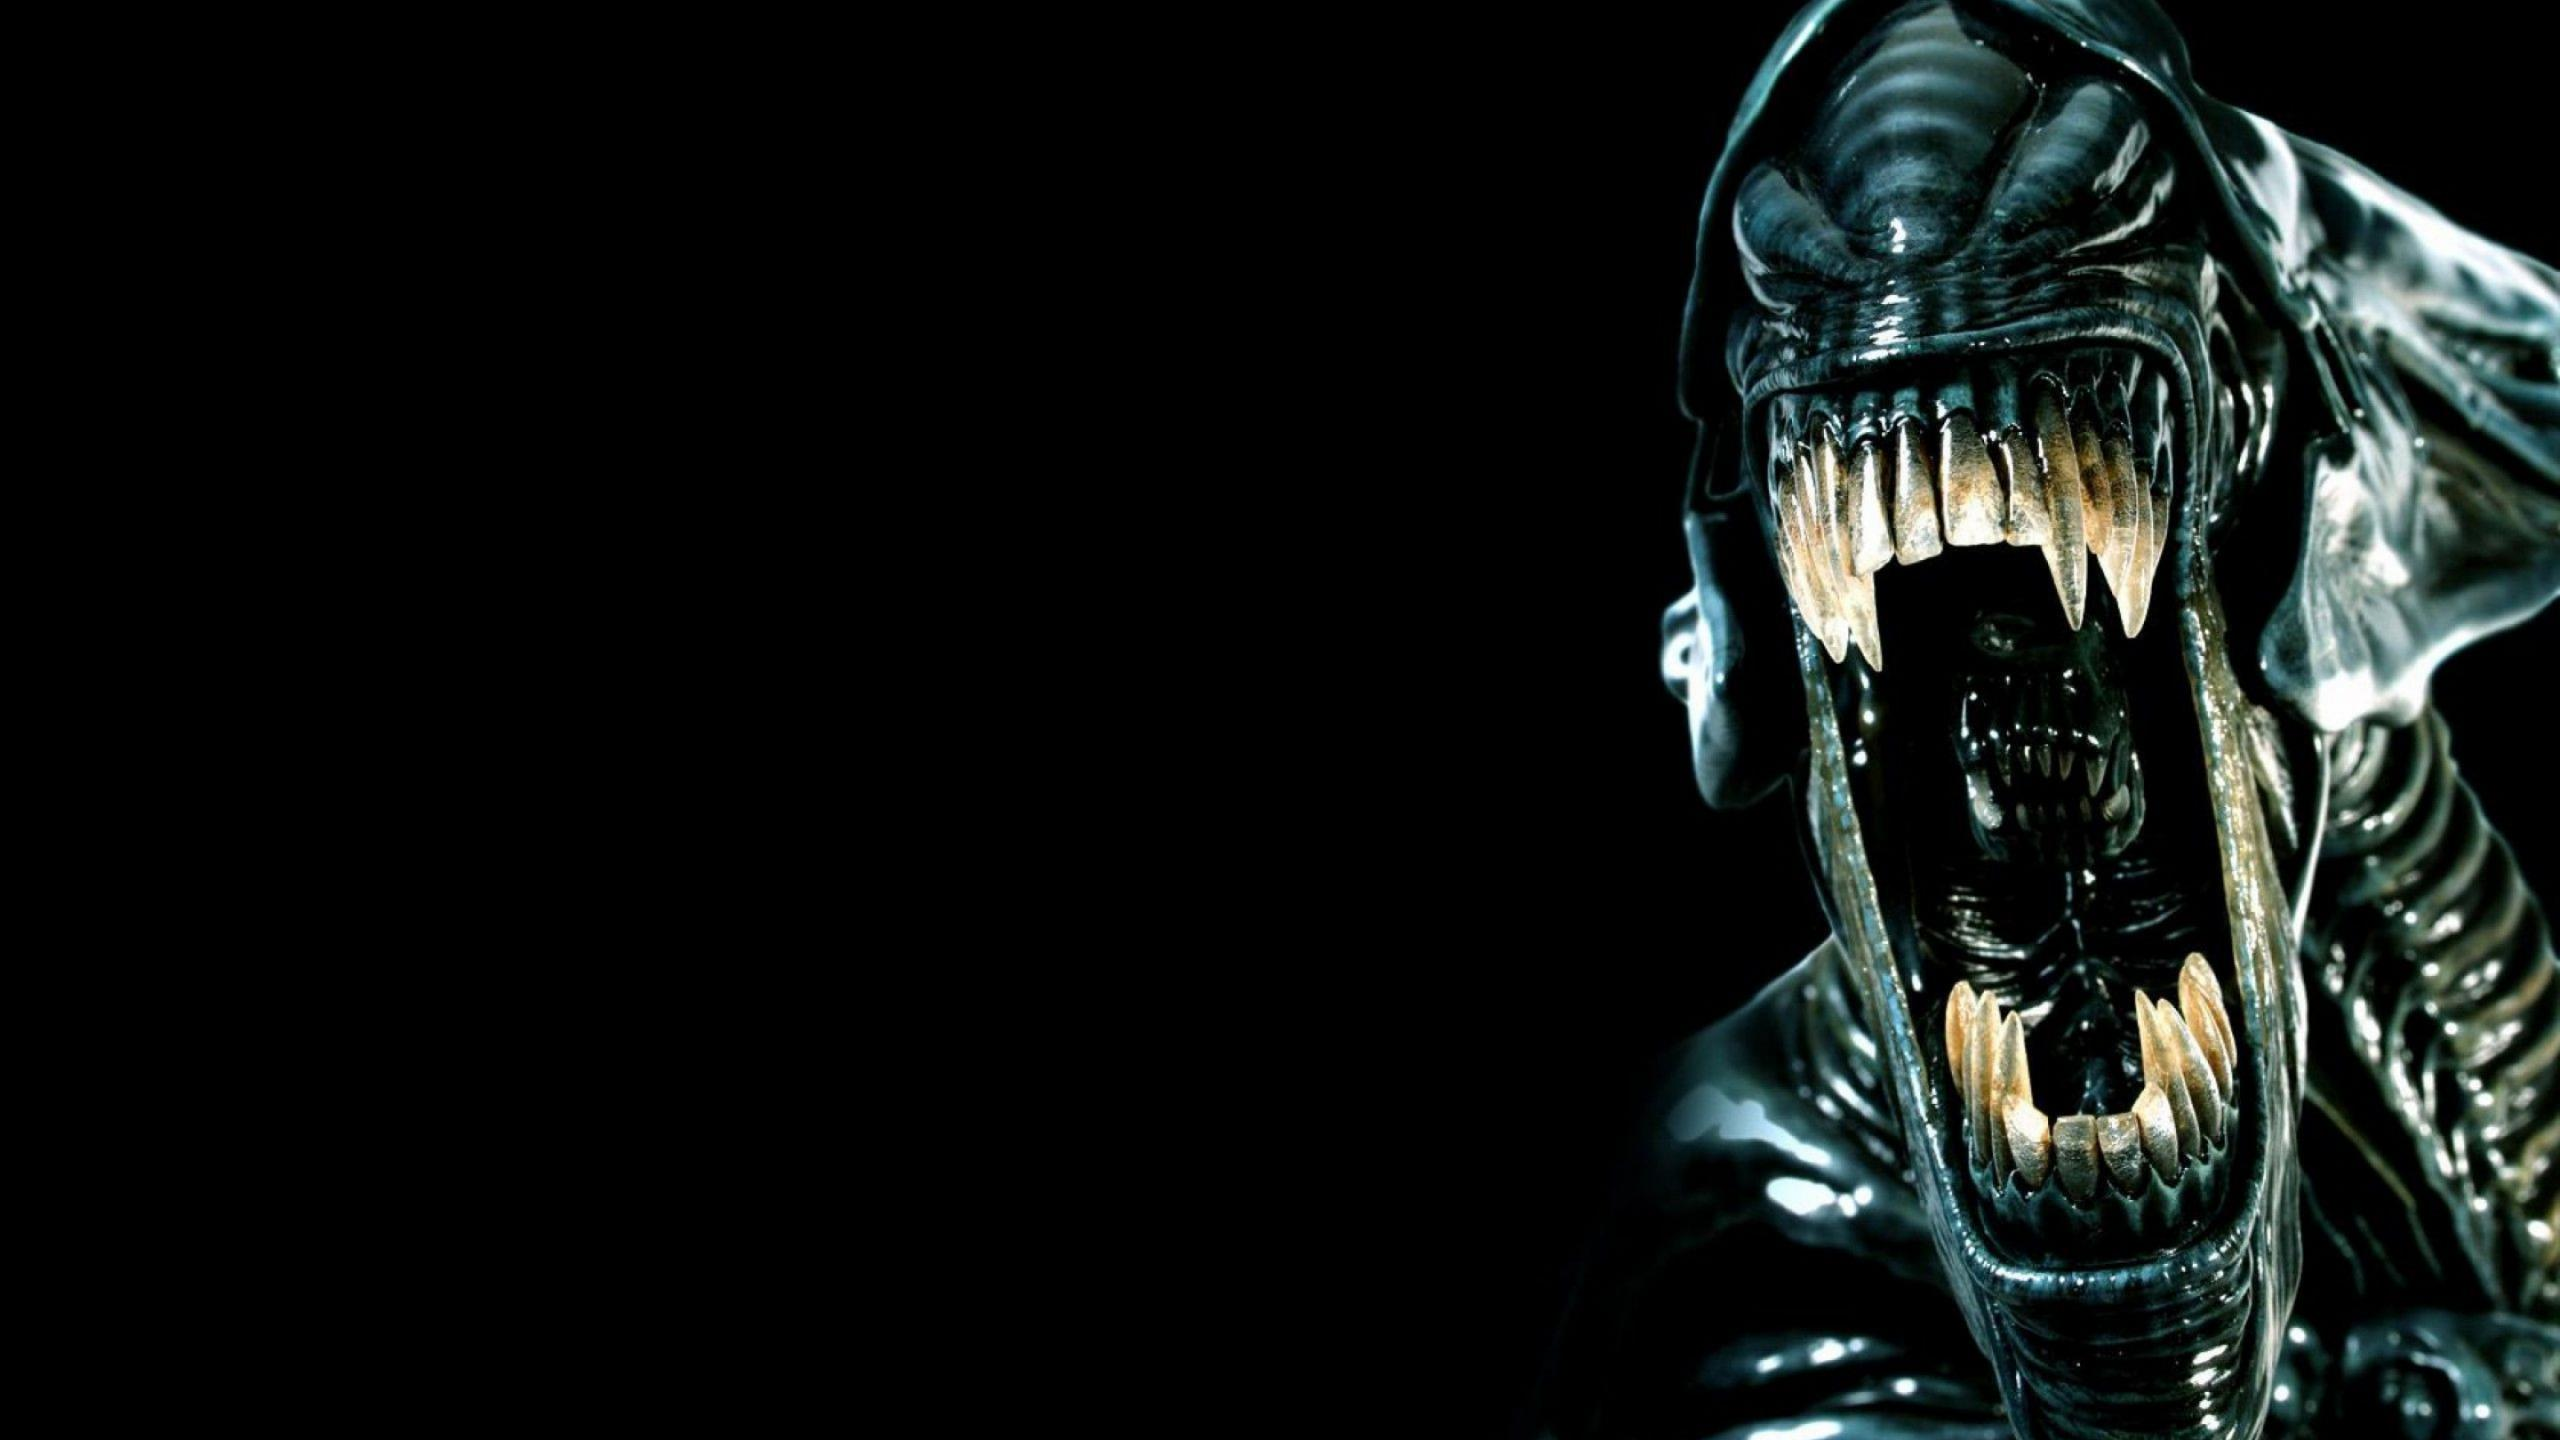 alien_teeth_horror_fear_killer_evil_2560x1440_hd-wallpaper-89743